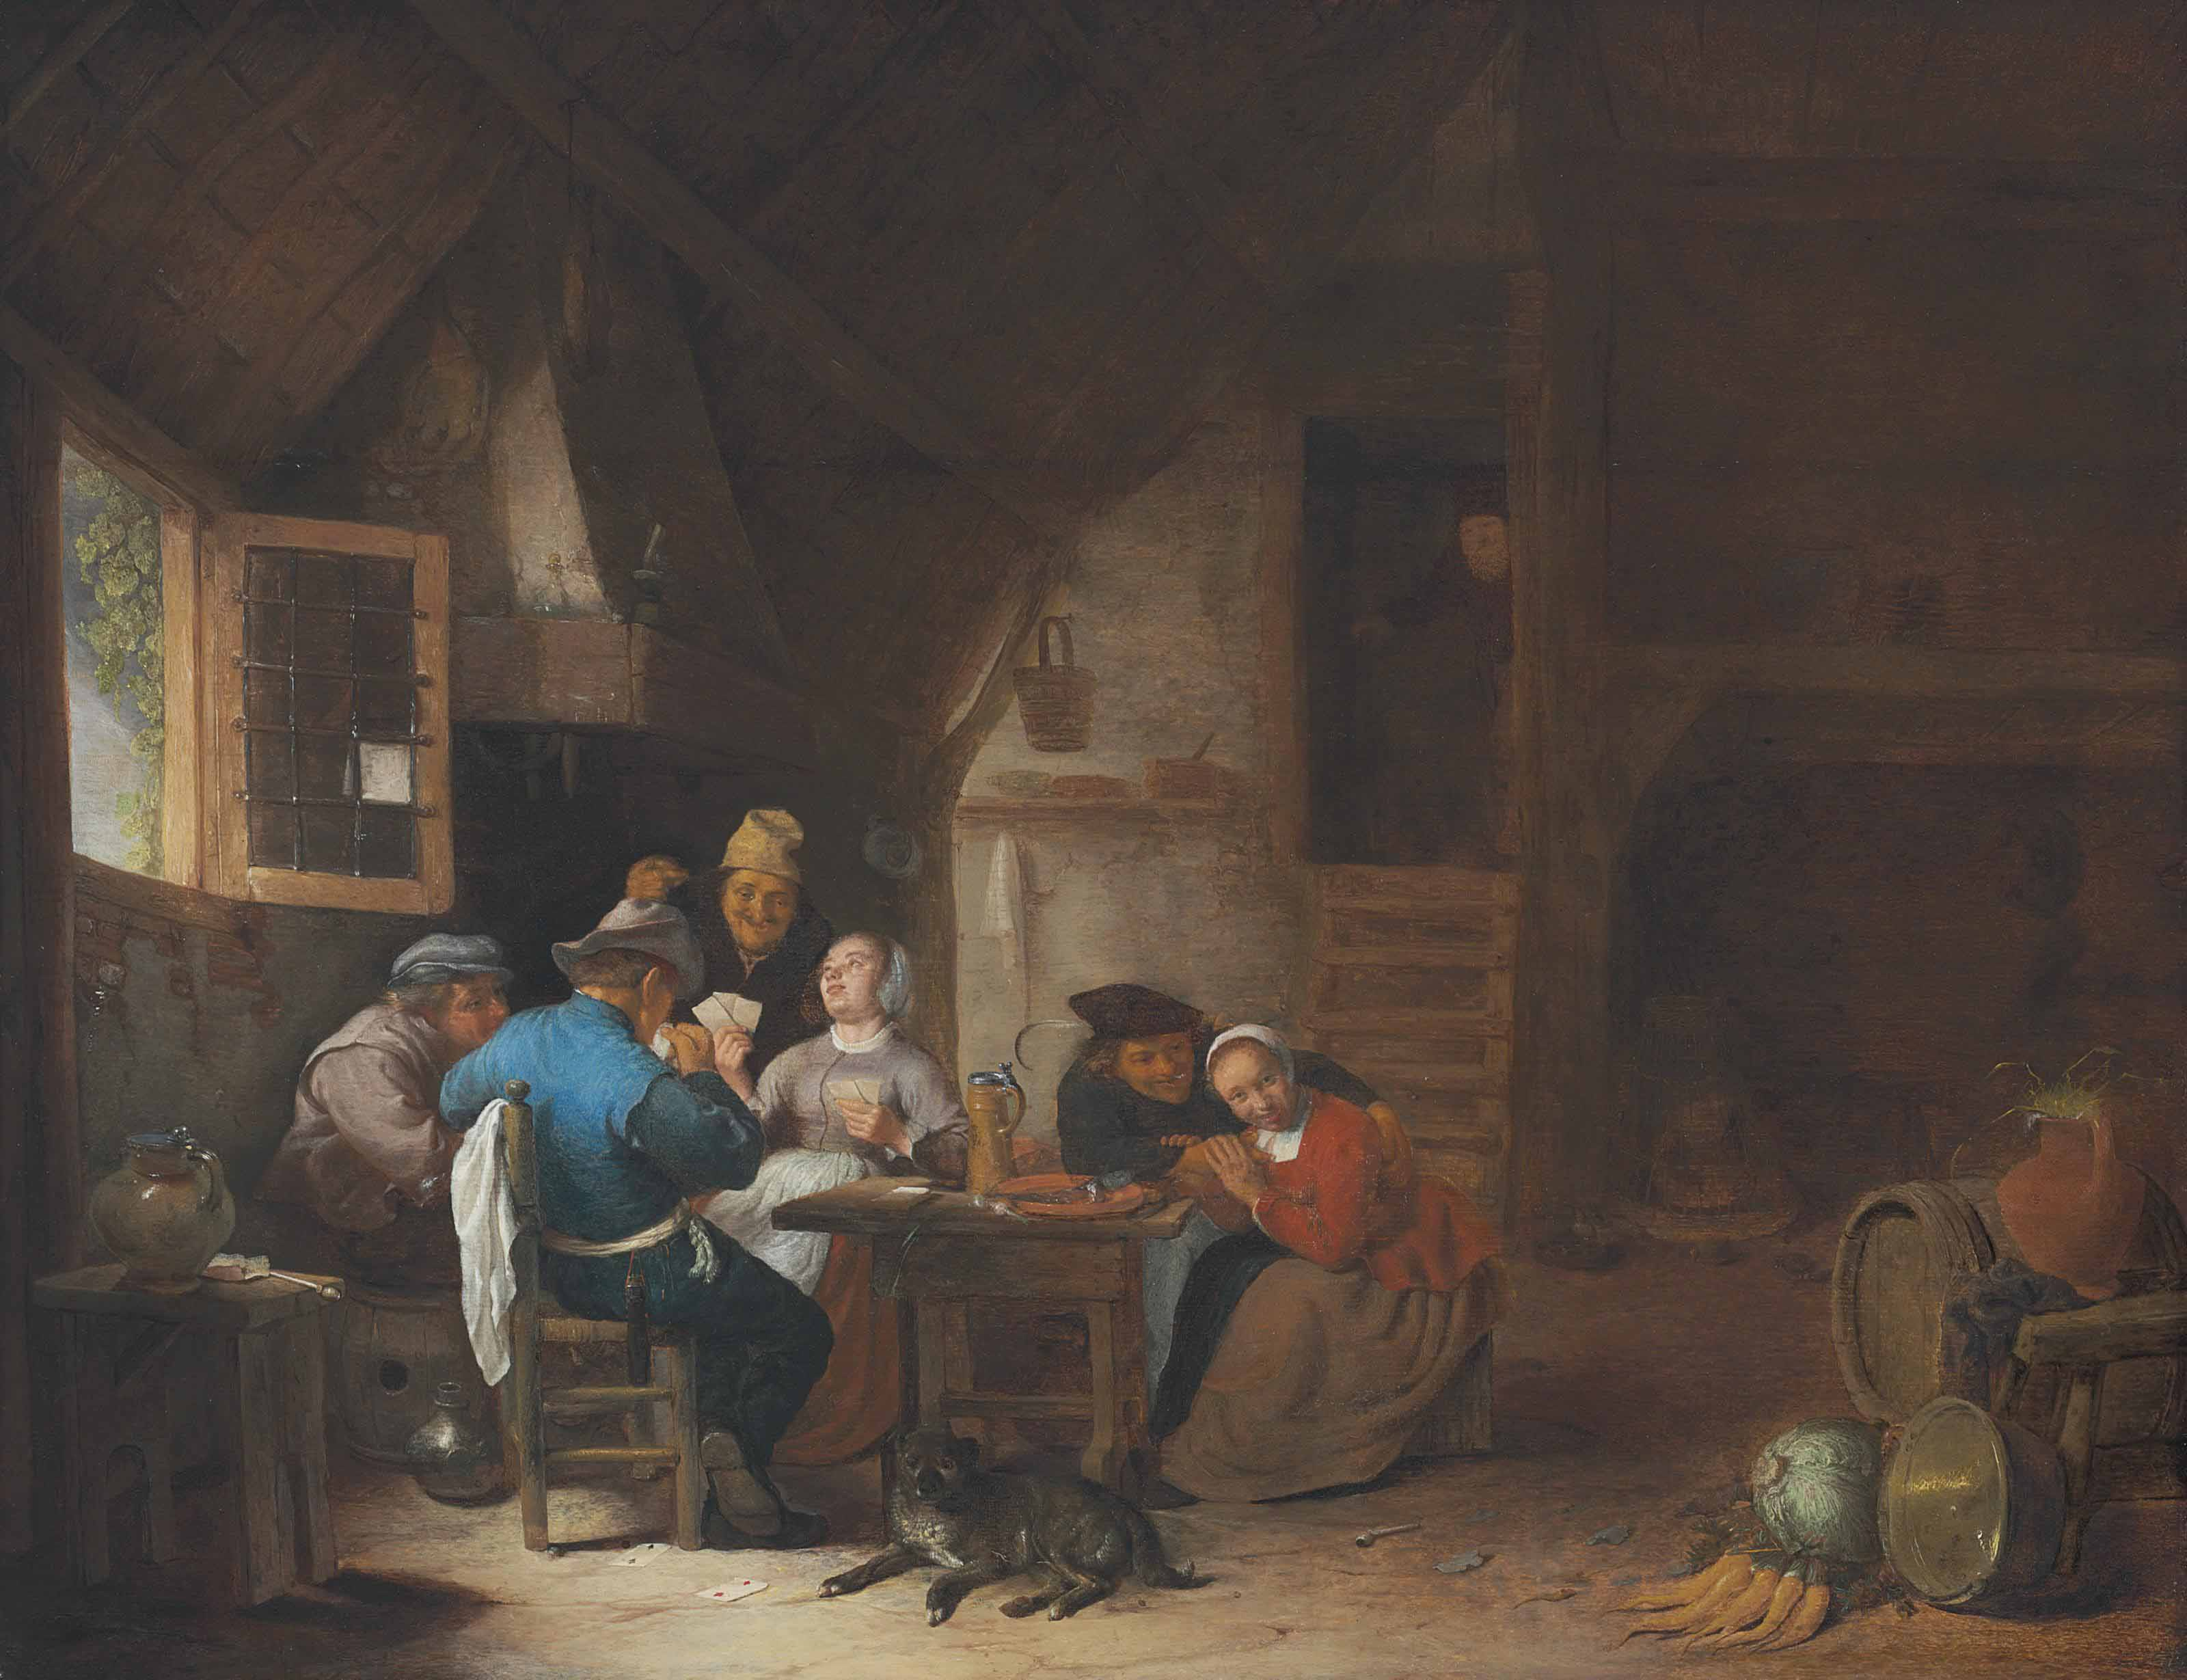 An interior with peasants seated around a table playing cards